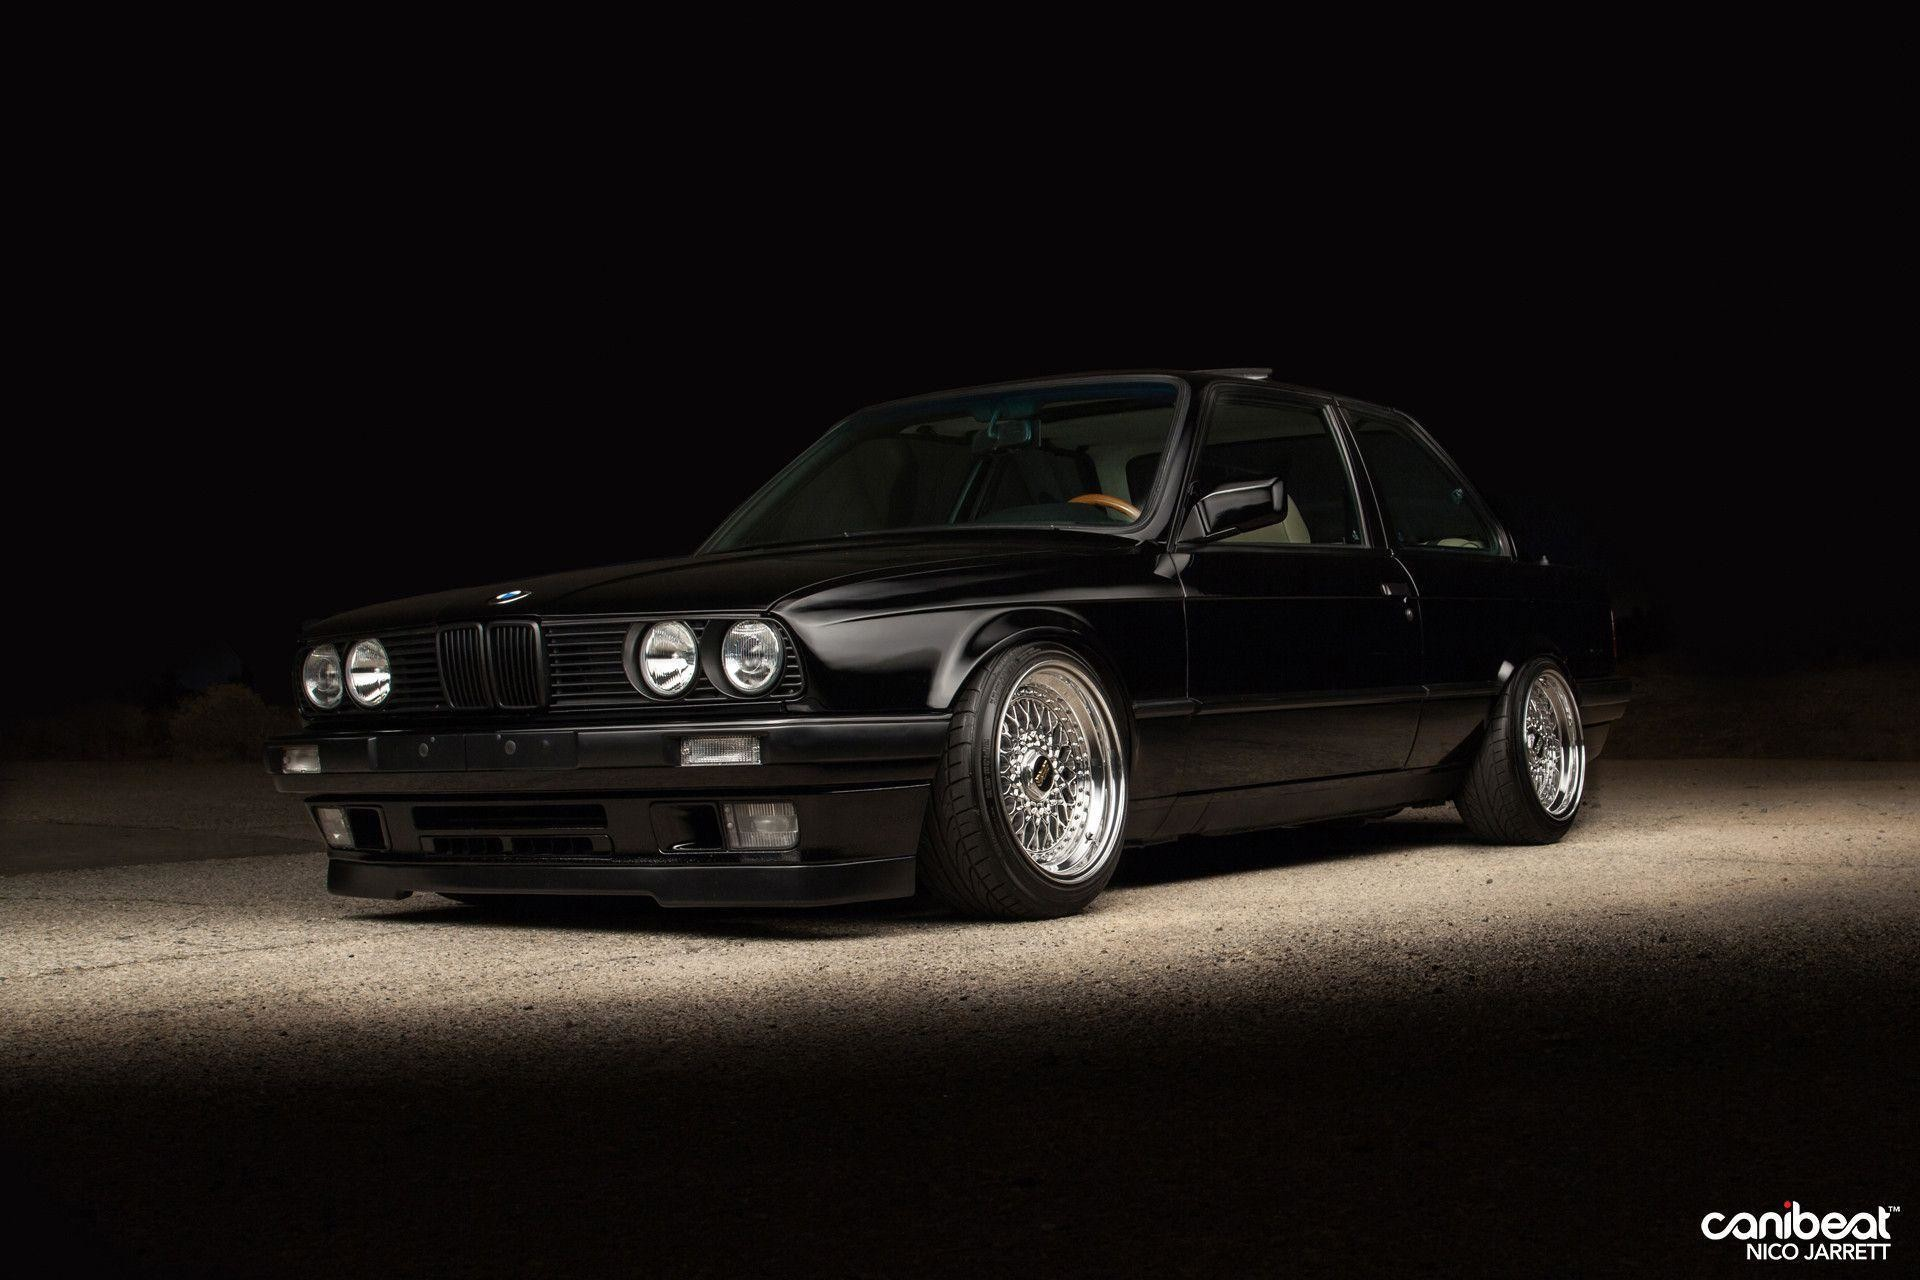 1920x1280 Wallpaper Wednesday: Abe's E30 BMW – Canibeat